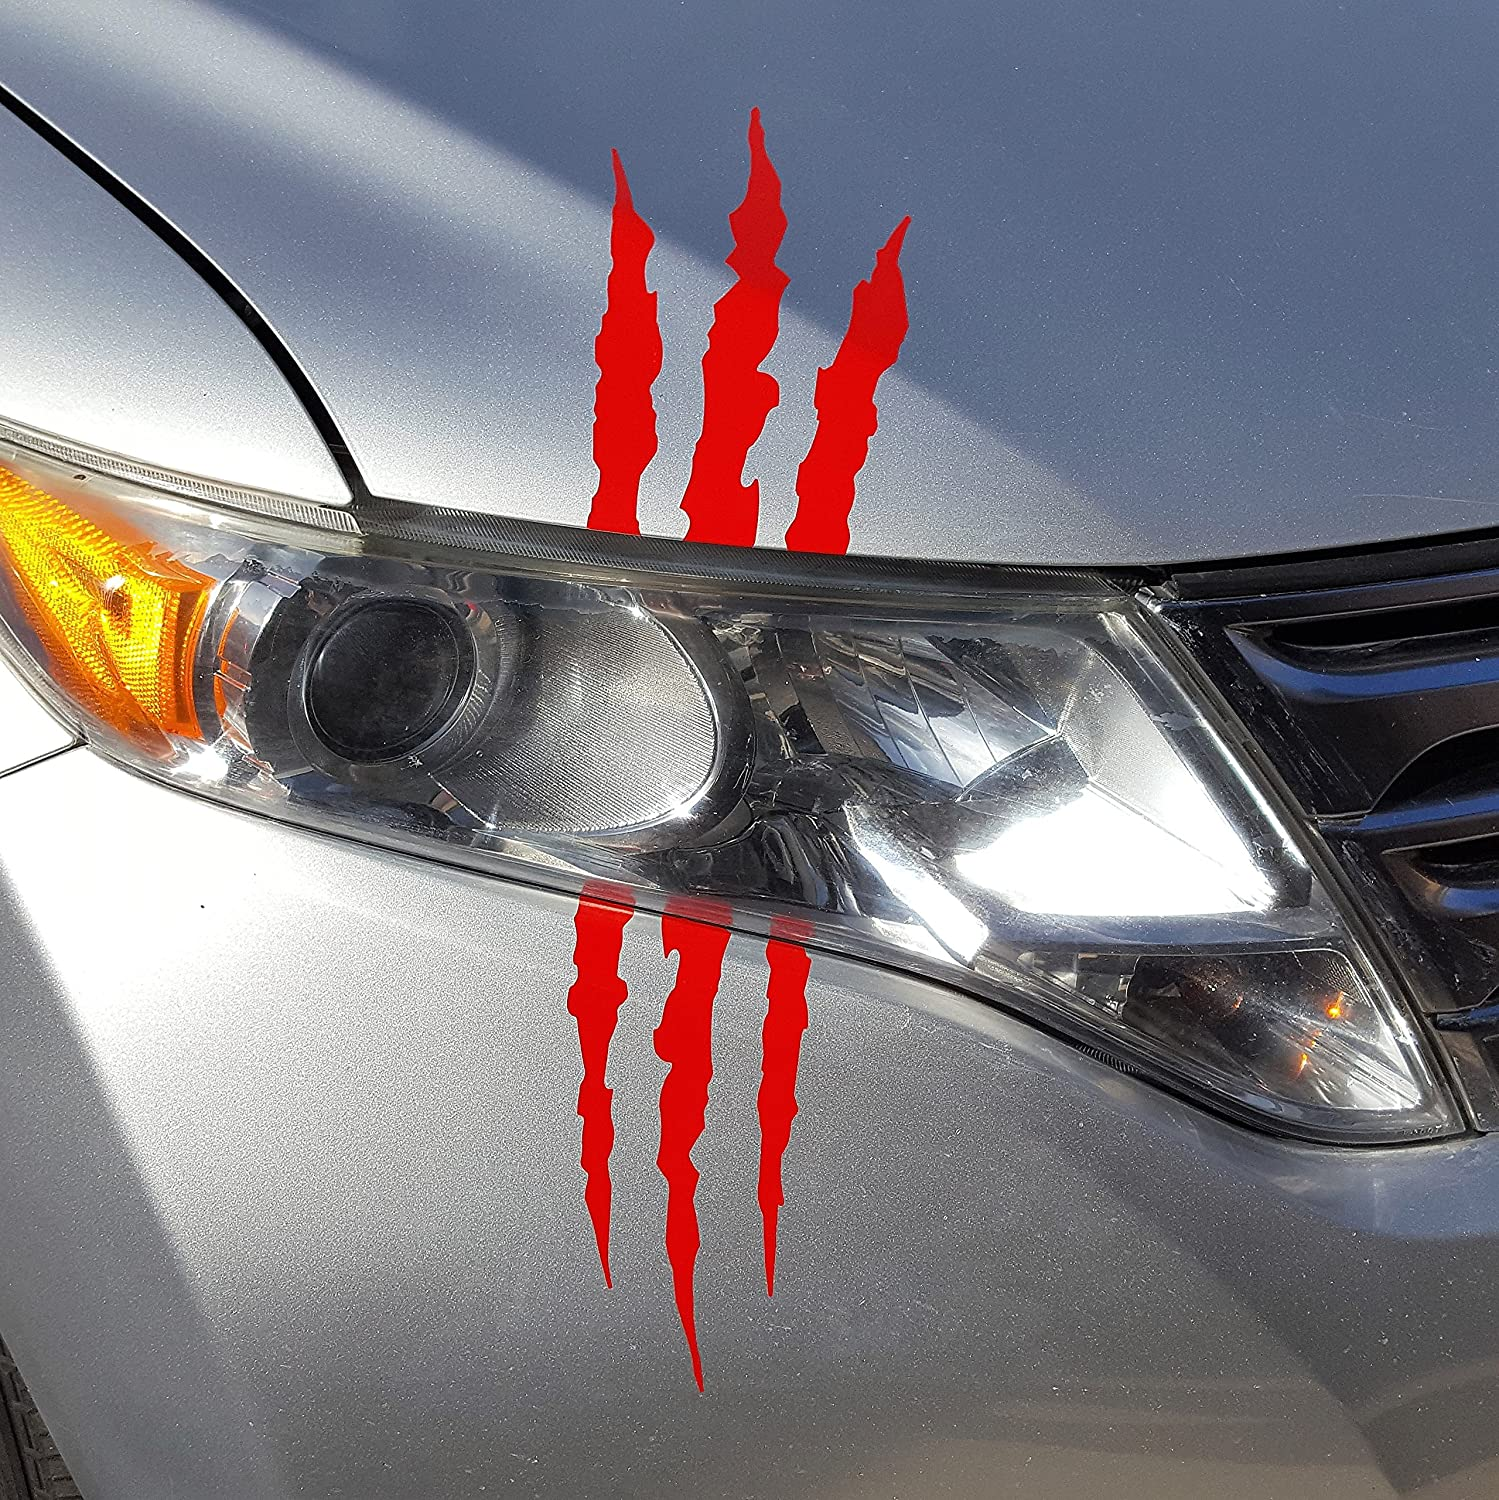 Amazon com az auto graphics claw decal headlight monster scar kit marks tear scratch car truck sticker red automotive